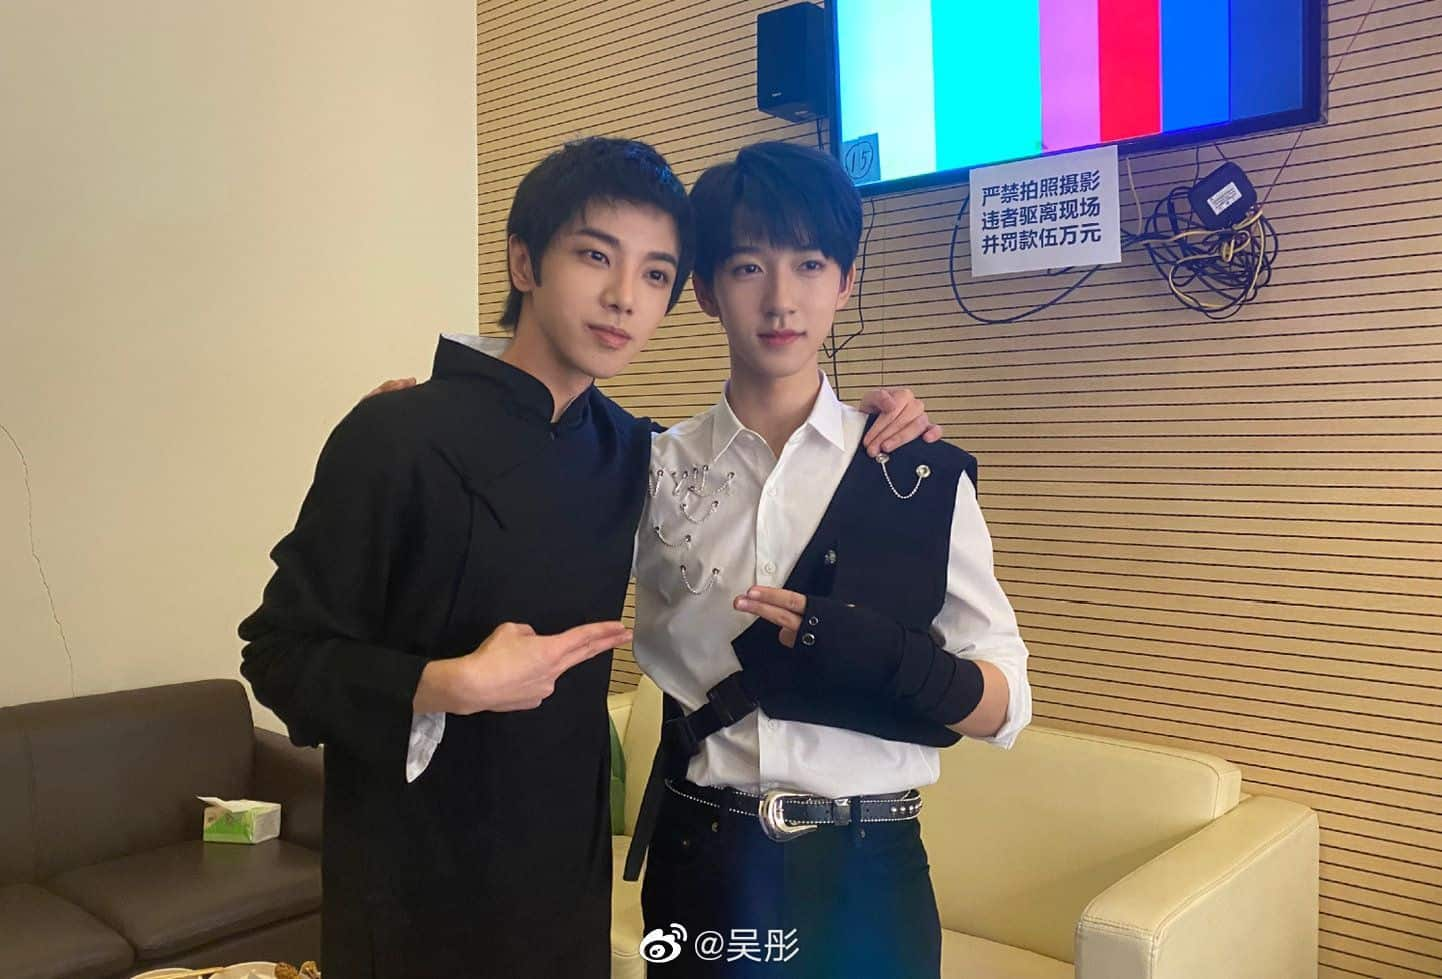 Hua Chenyu and TNT's He Junlin Take Selfie for Ace vs Ace 5